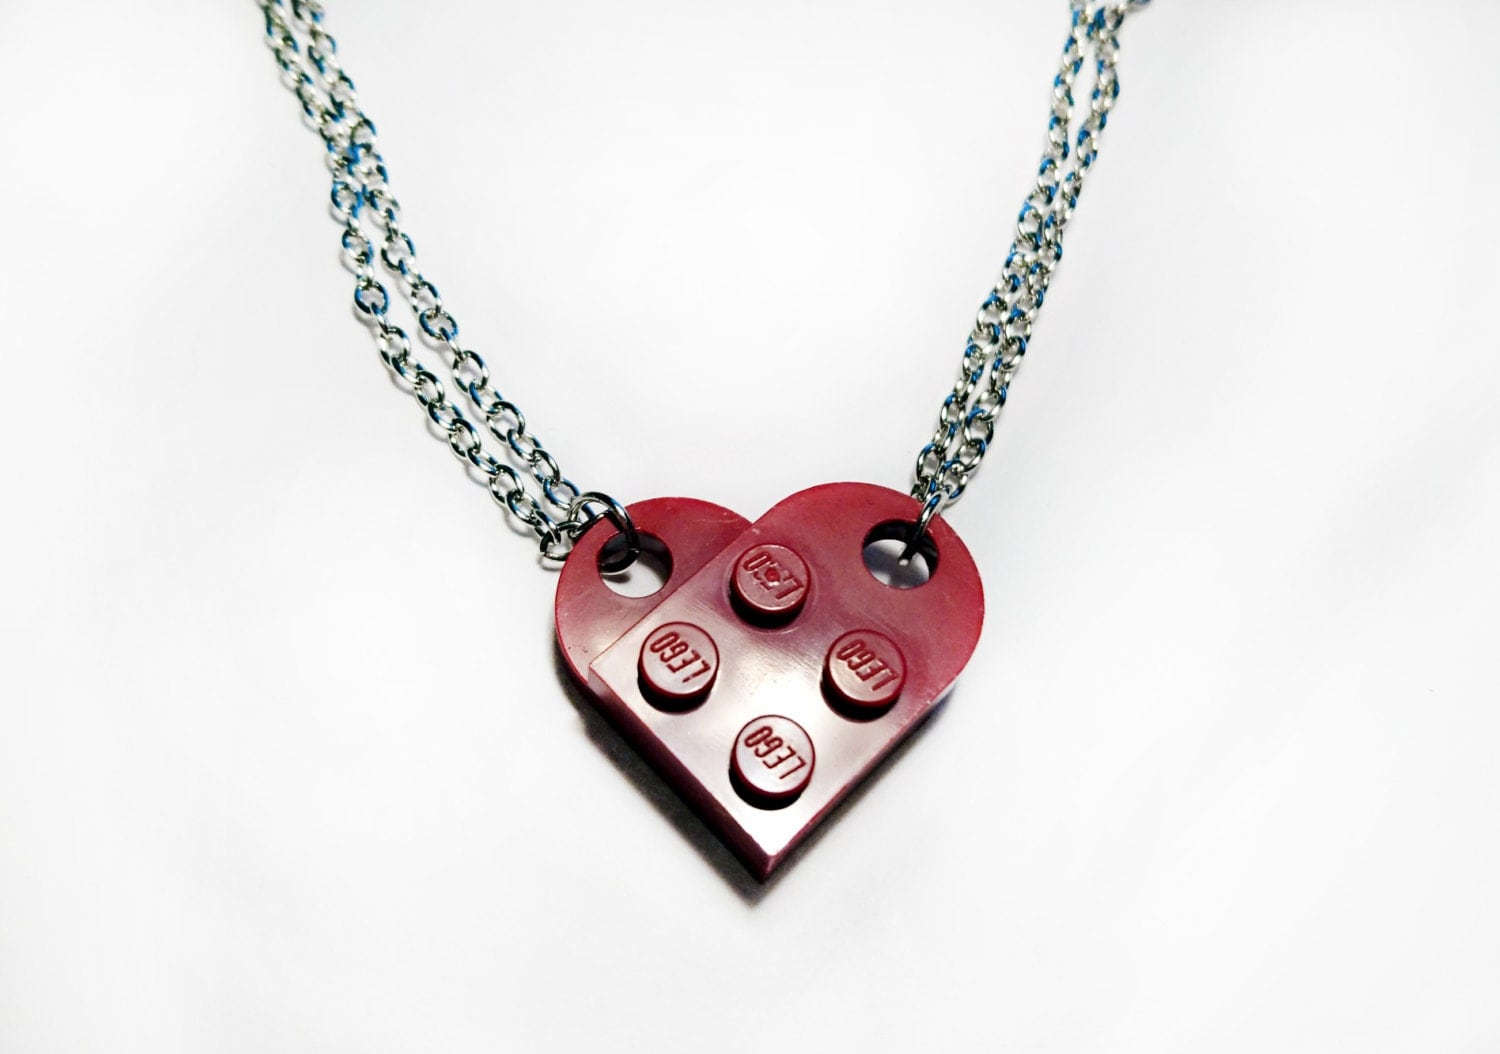 lego friendship necklace